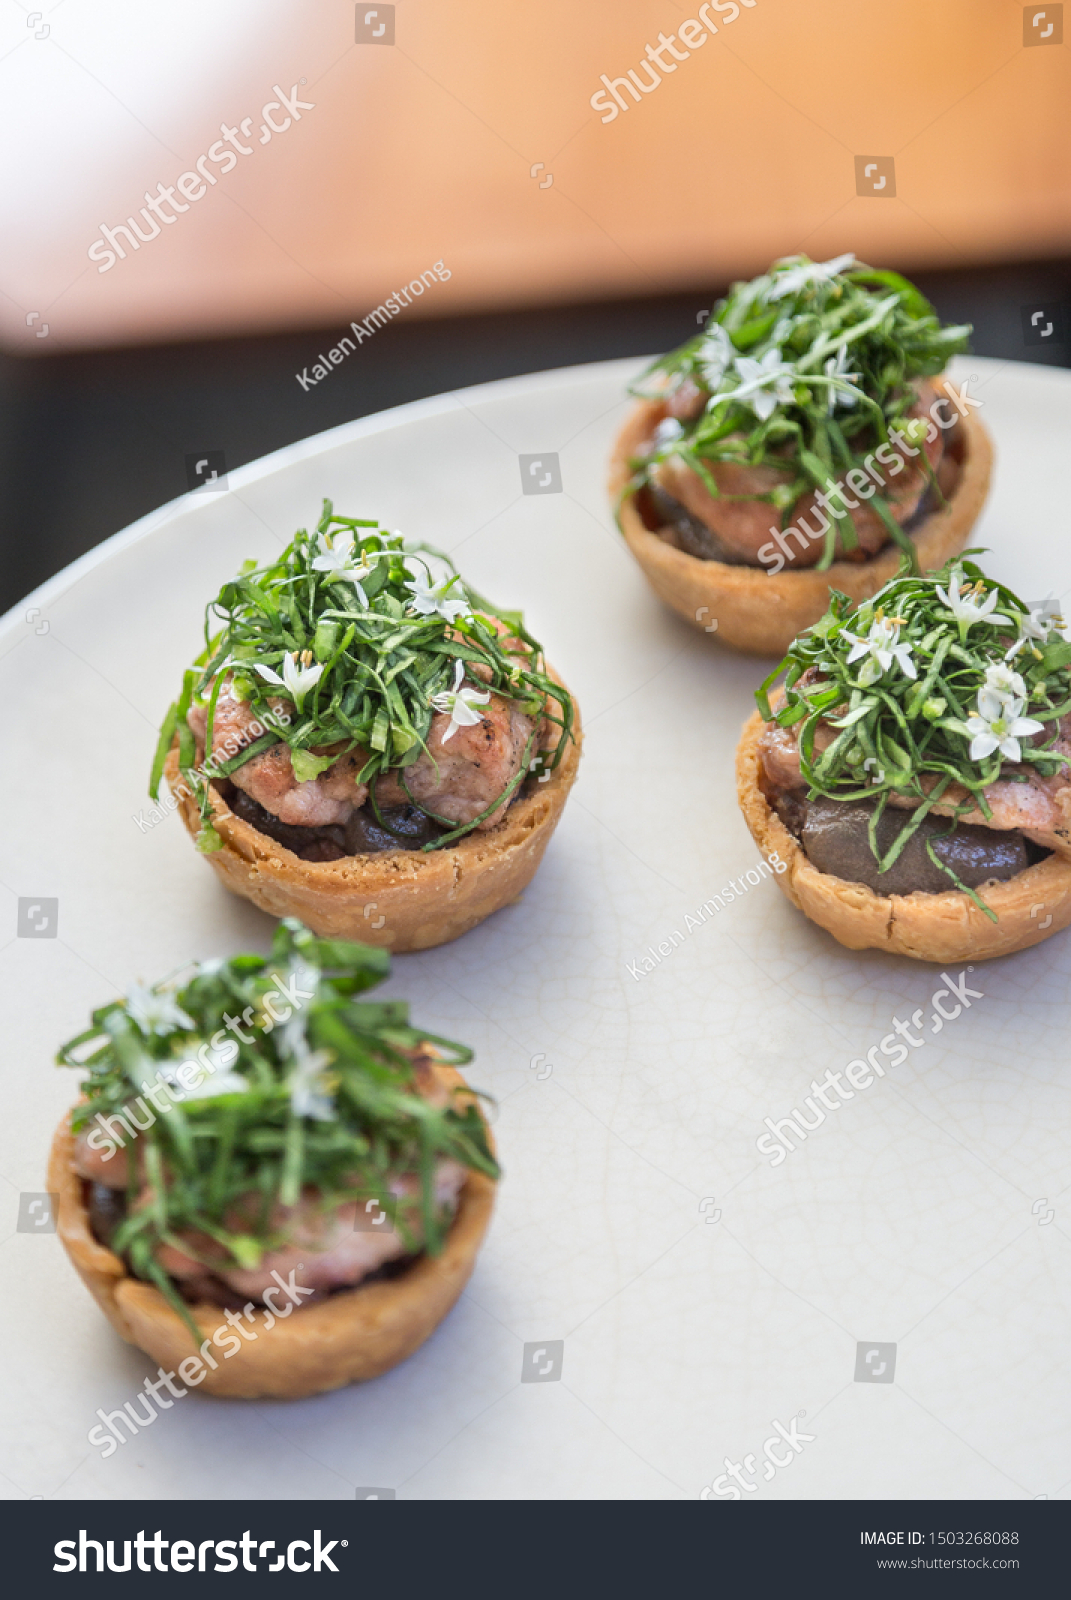 Derved Food Images Stock Photos Vectors Shutterstock